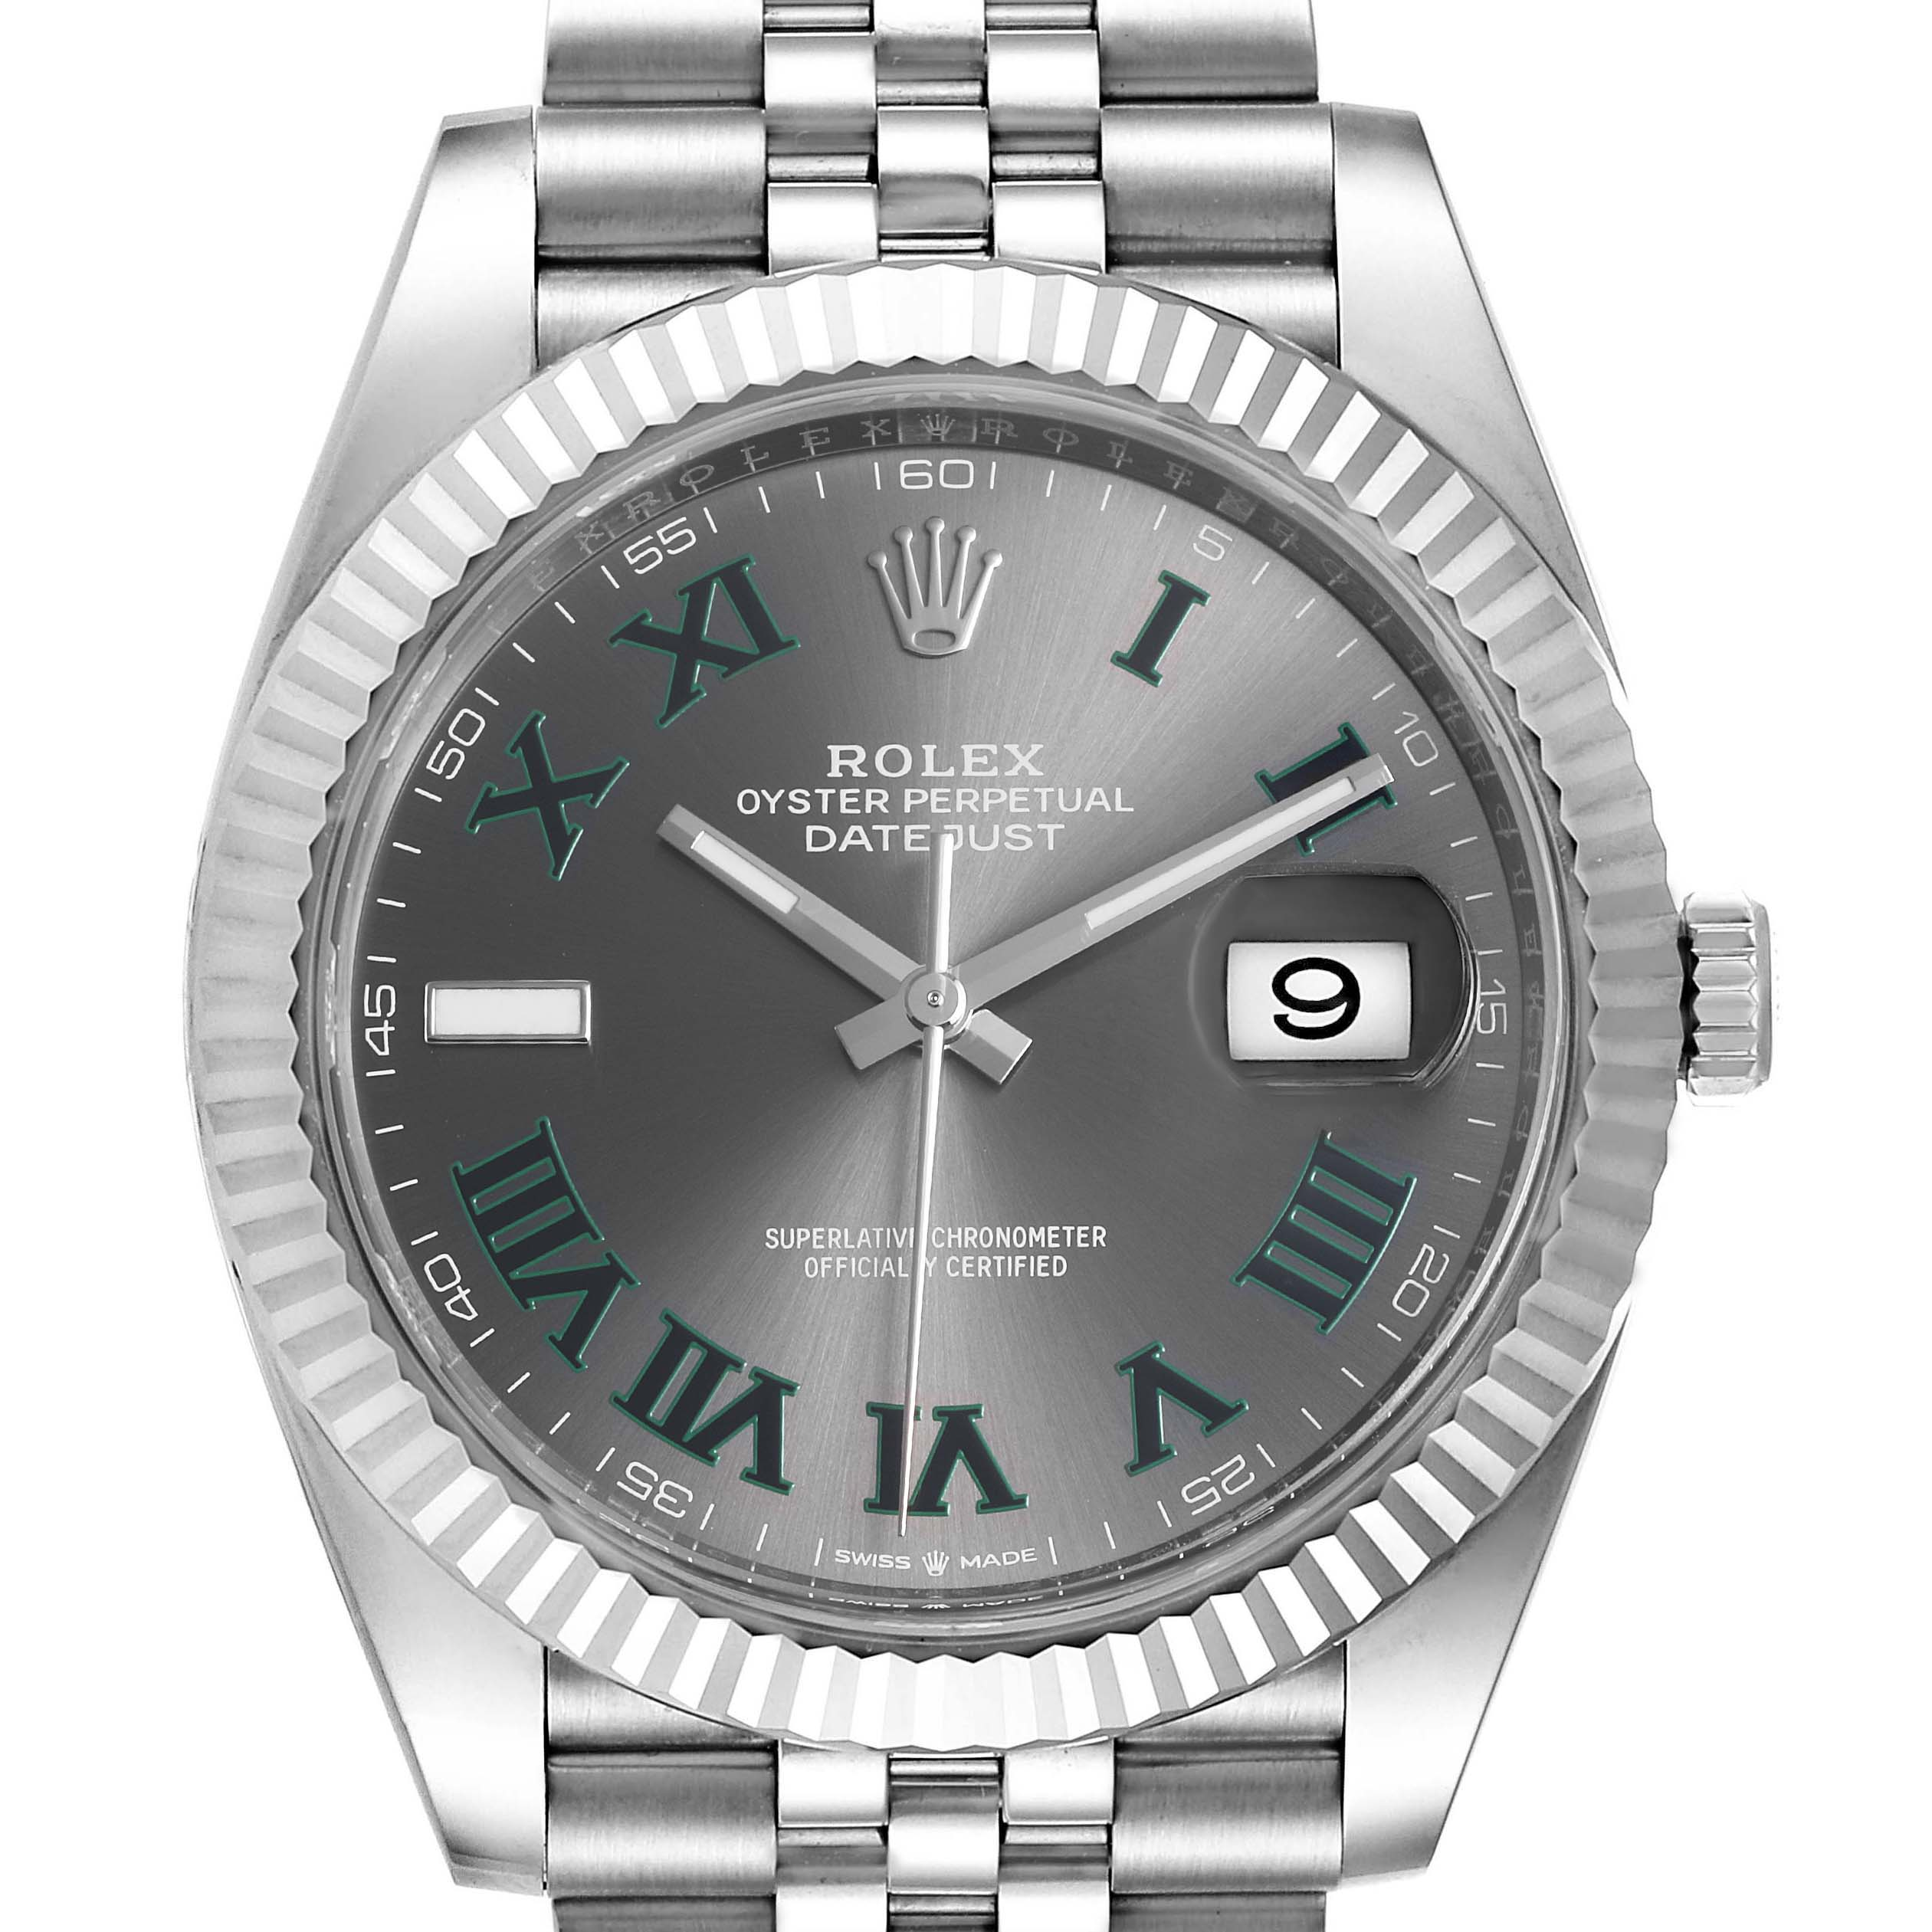 Photo of Rolex Datejust 41 Steel White Gold Green Numerals Mens Watch 126334 Box Card